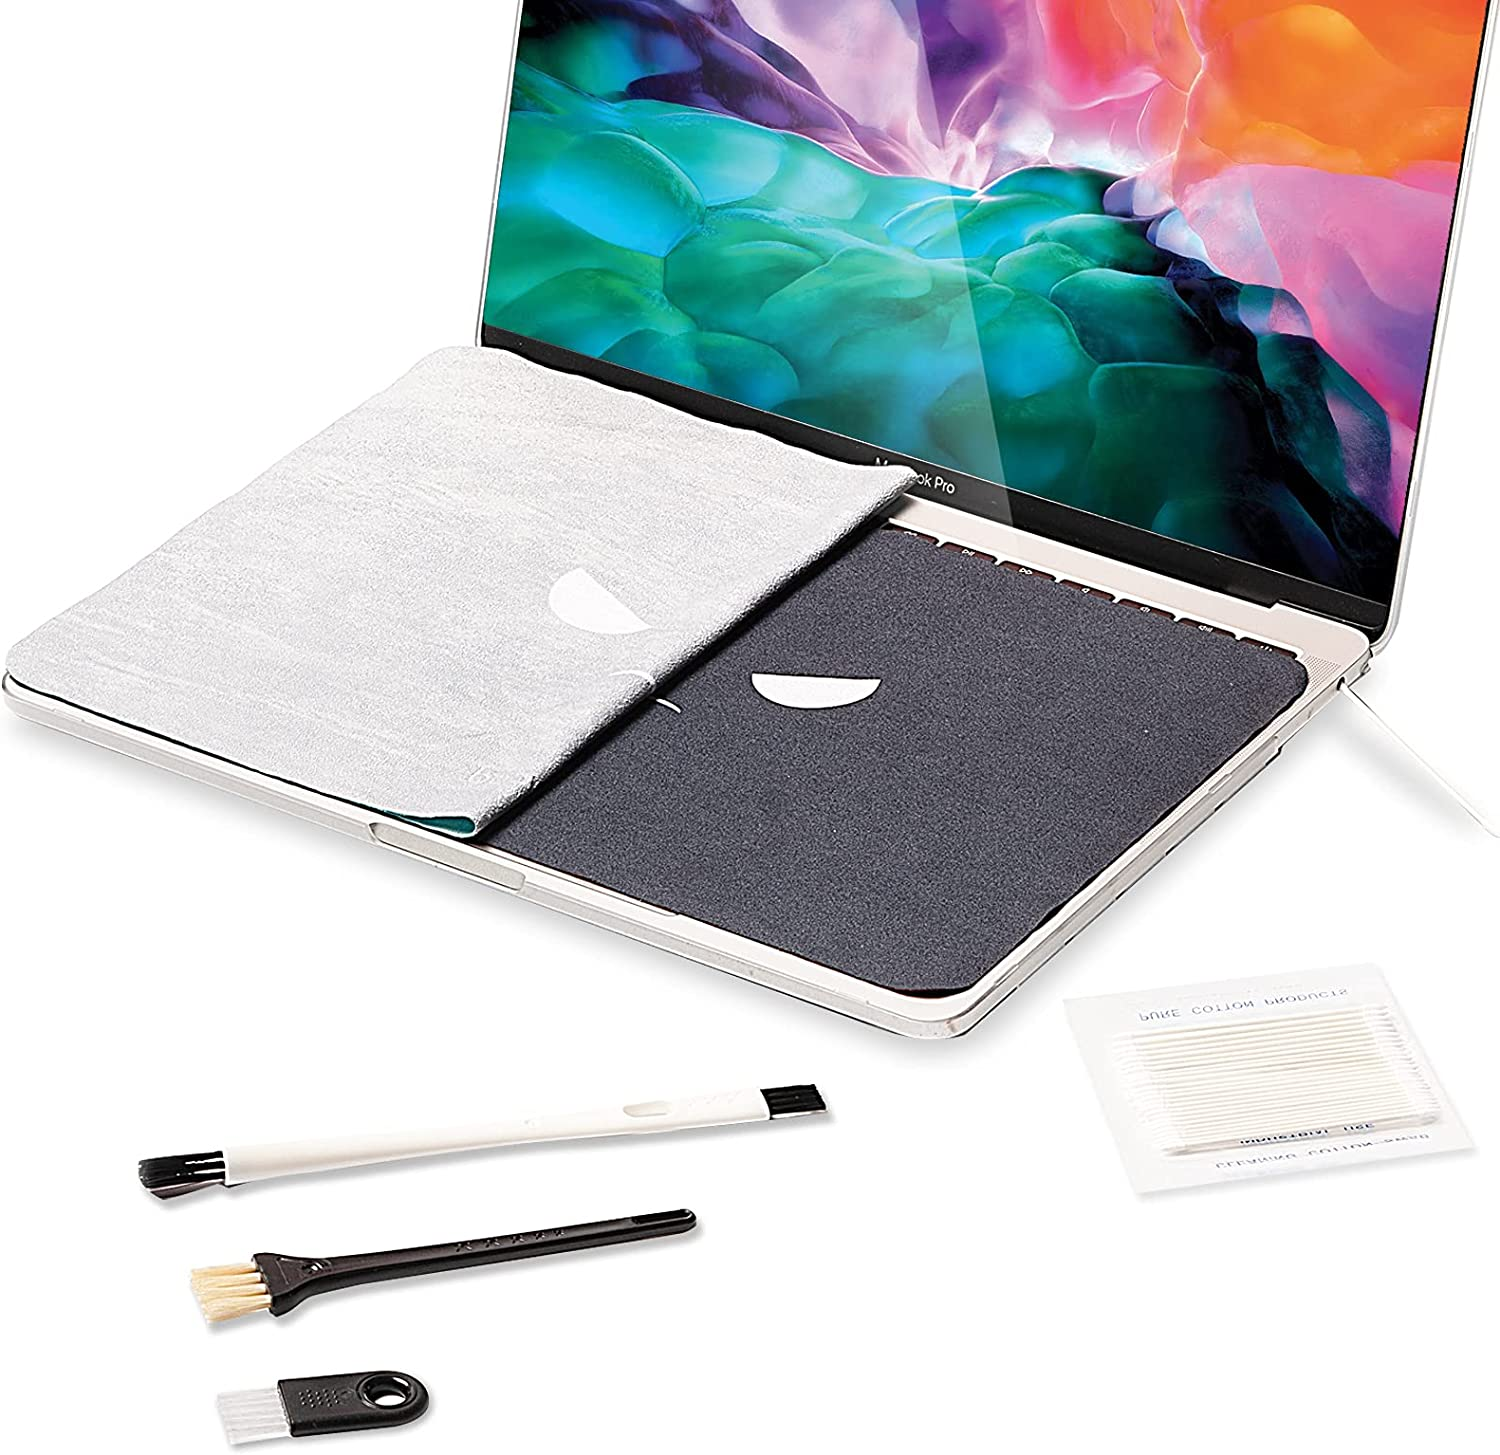 Bqover 2 Pack Reversible Screen Keyboard Imprint Protection, Keyboard Covers,Microfiber Liner Cleaning Cloth for MacBook,Laptops,30 Pcs Cleaning Kit for iPhone, Airpods and other Electronics